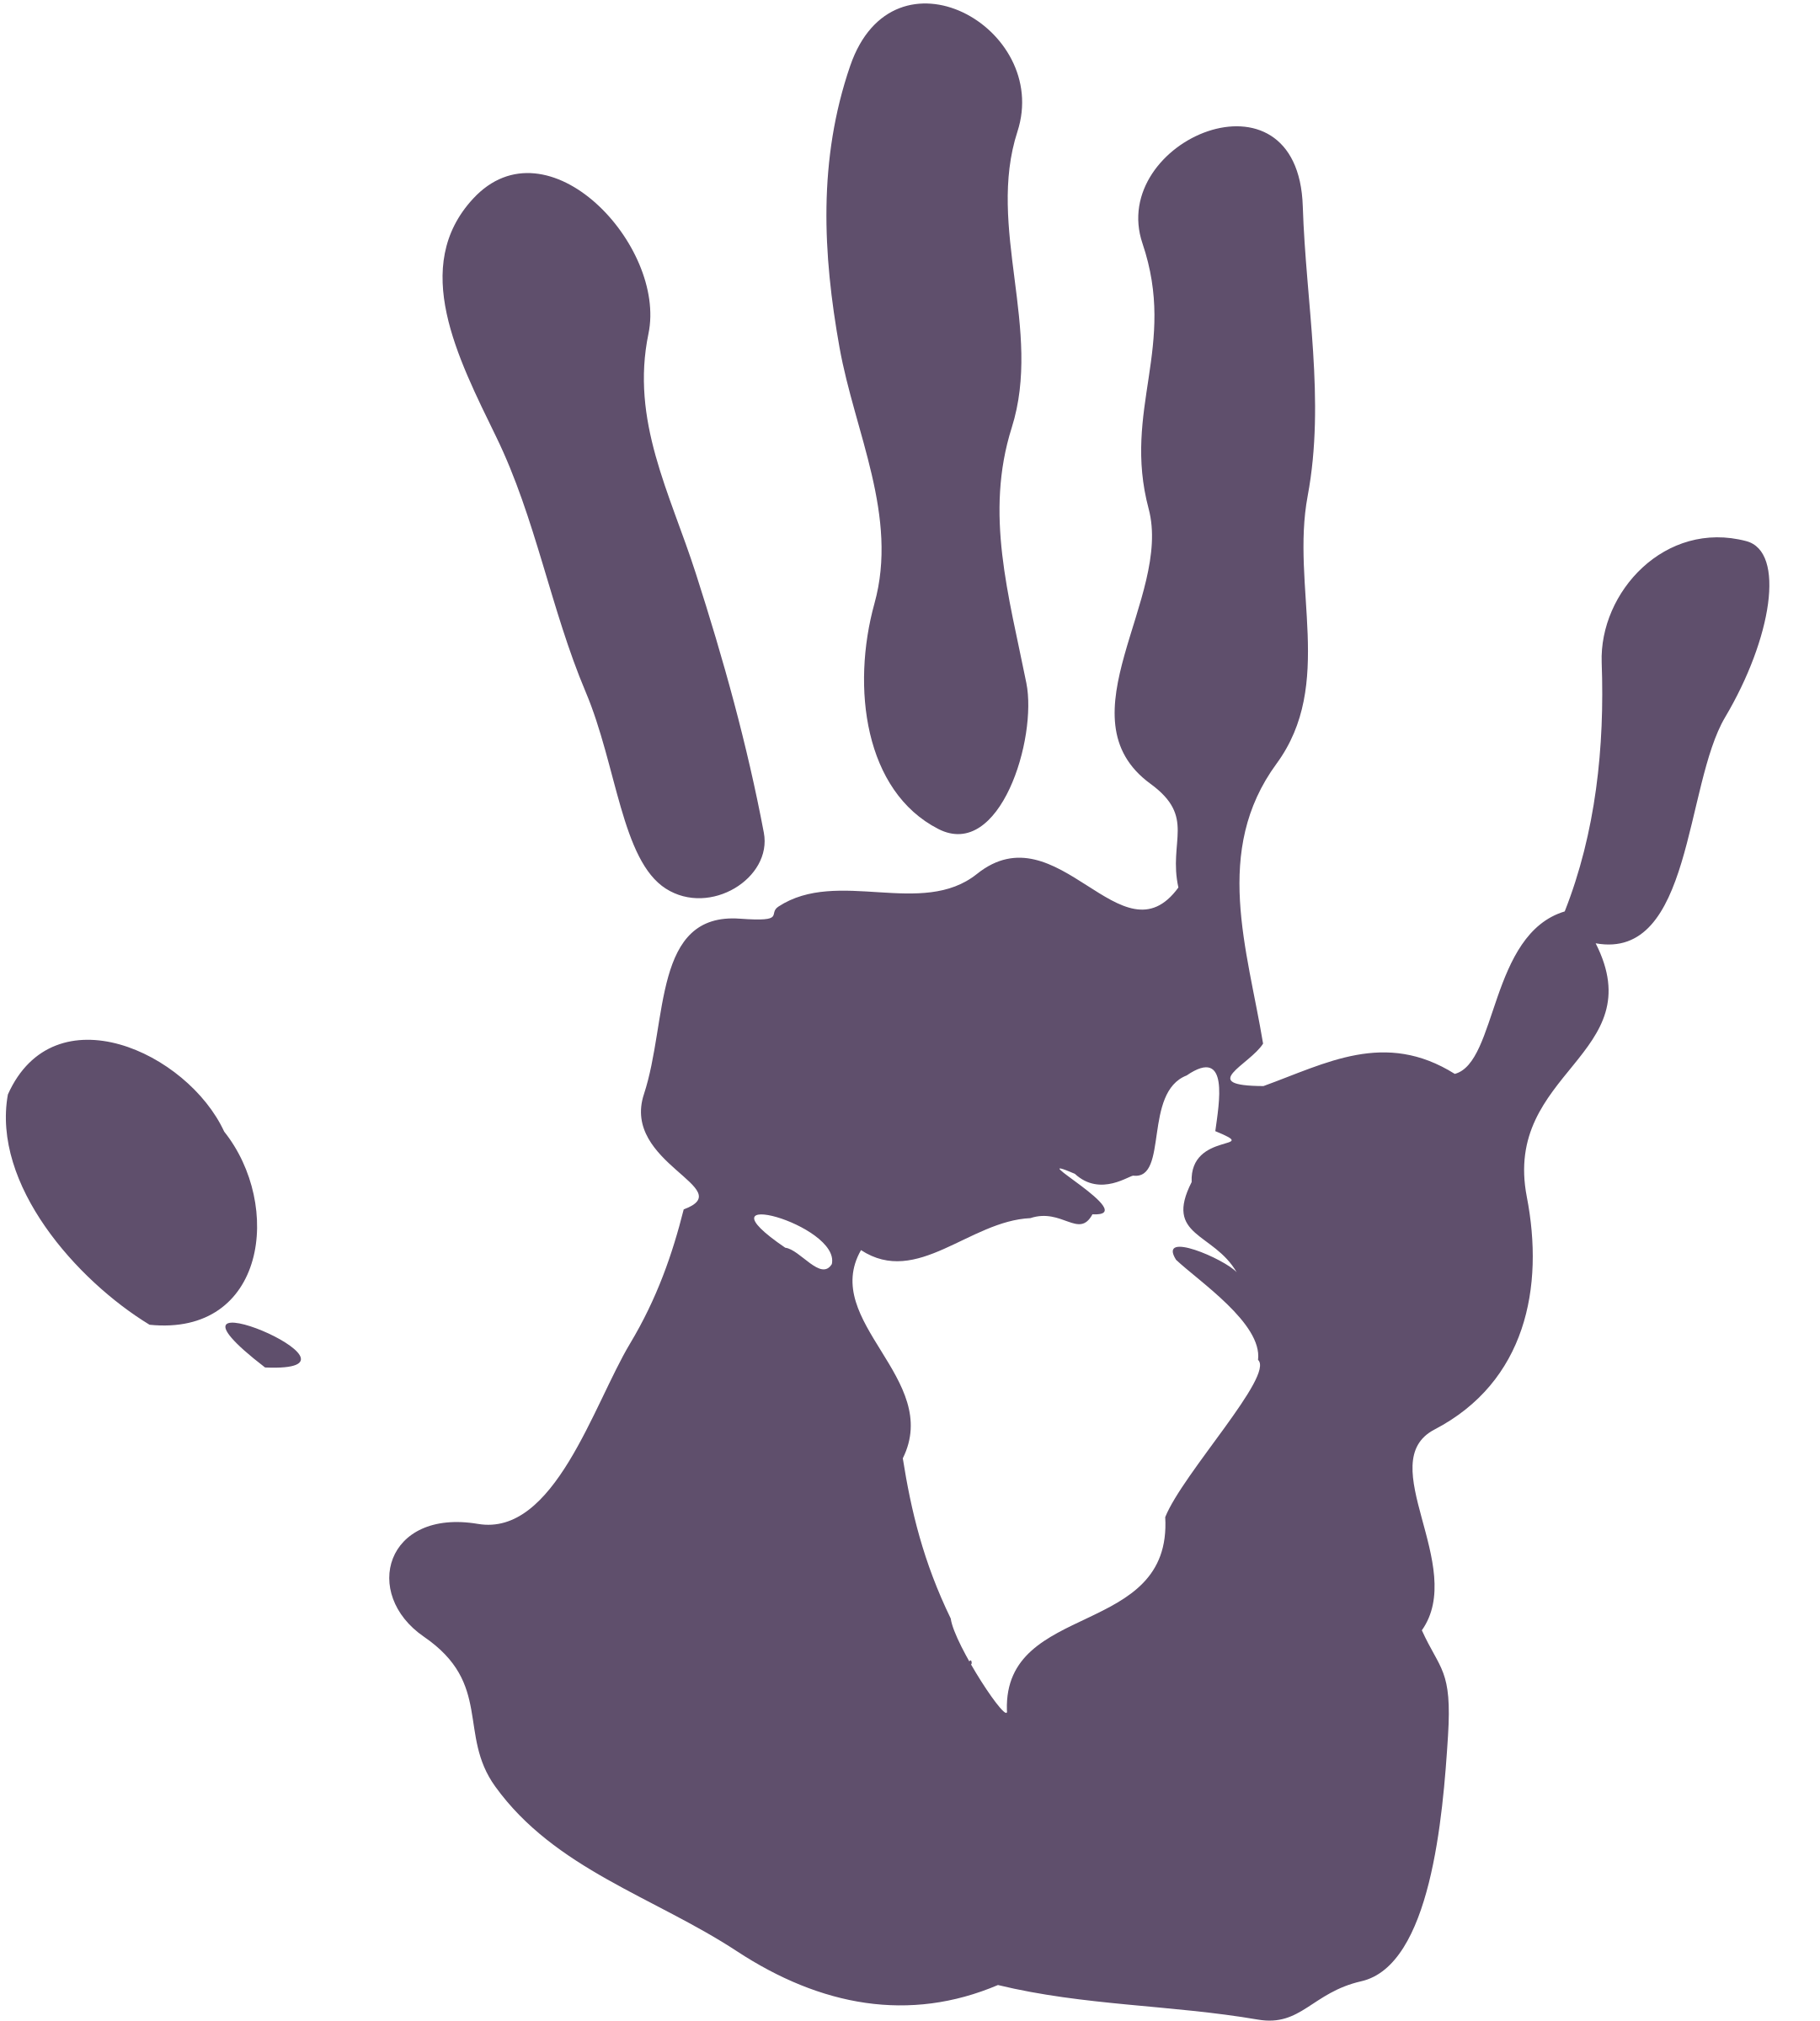 Handprint clipart black and white. Palmprint big image png